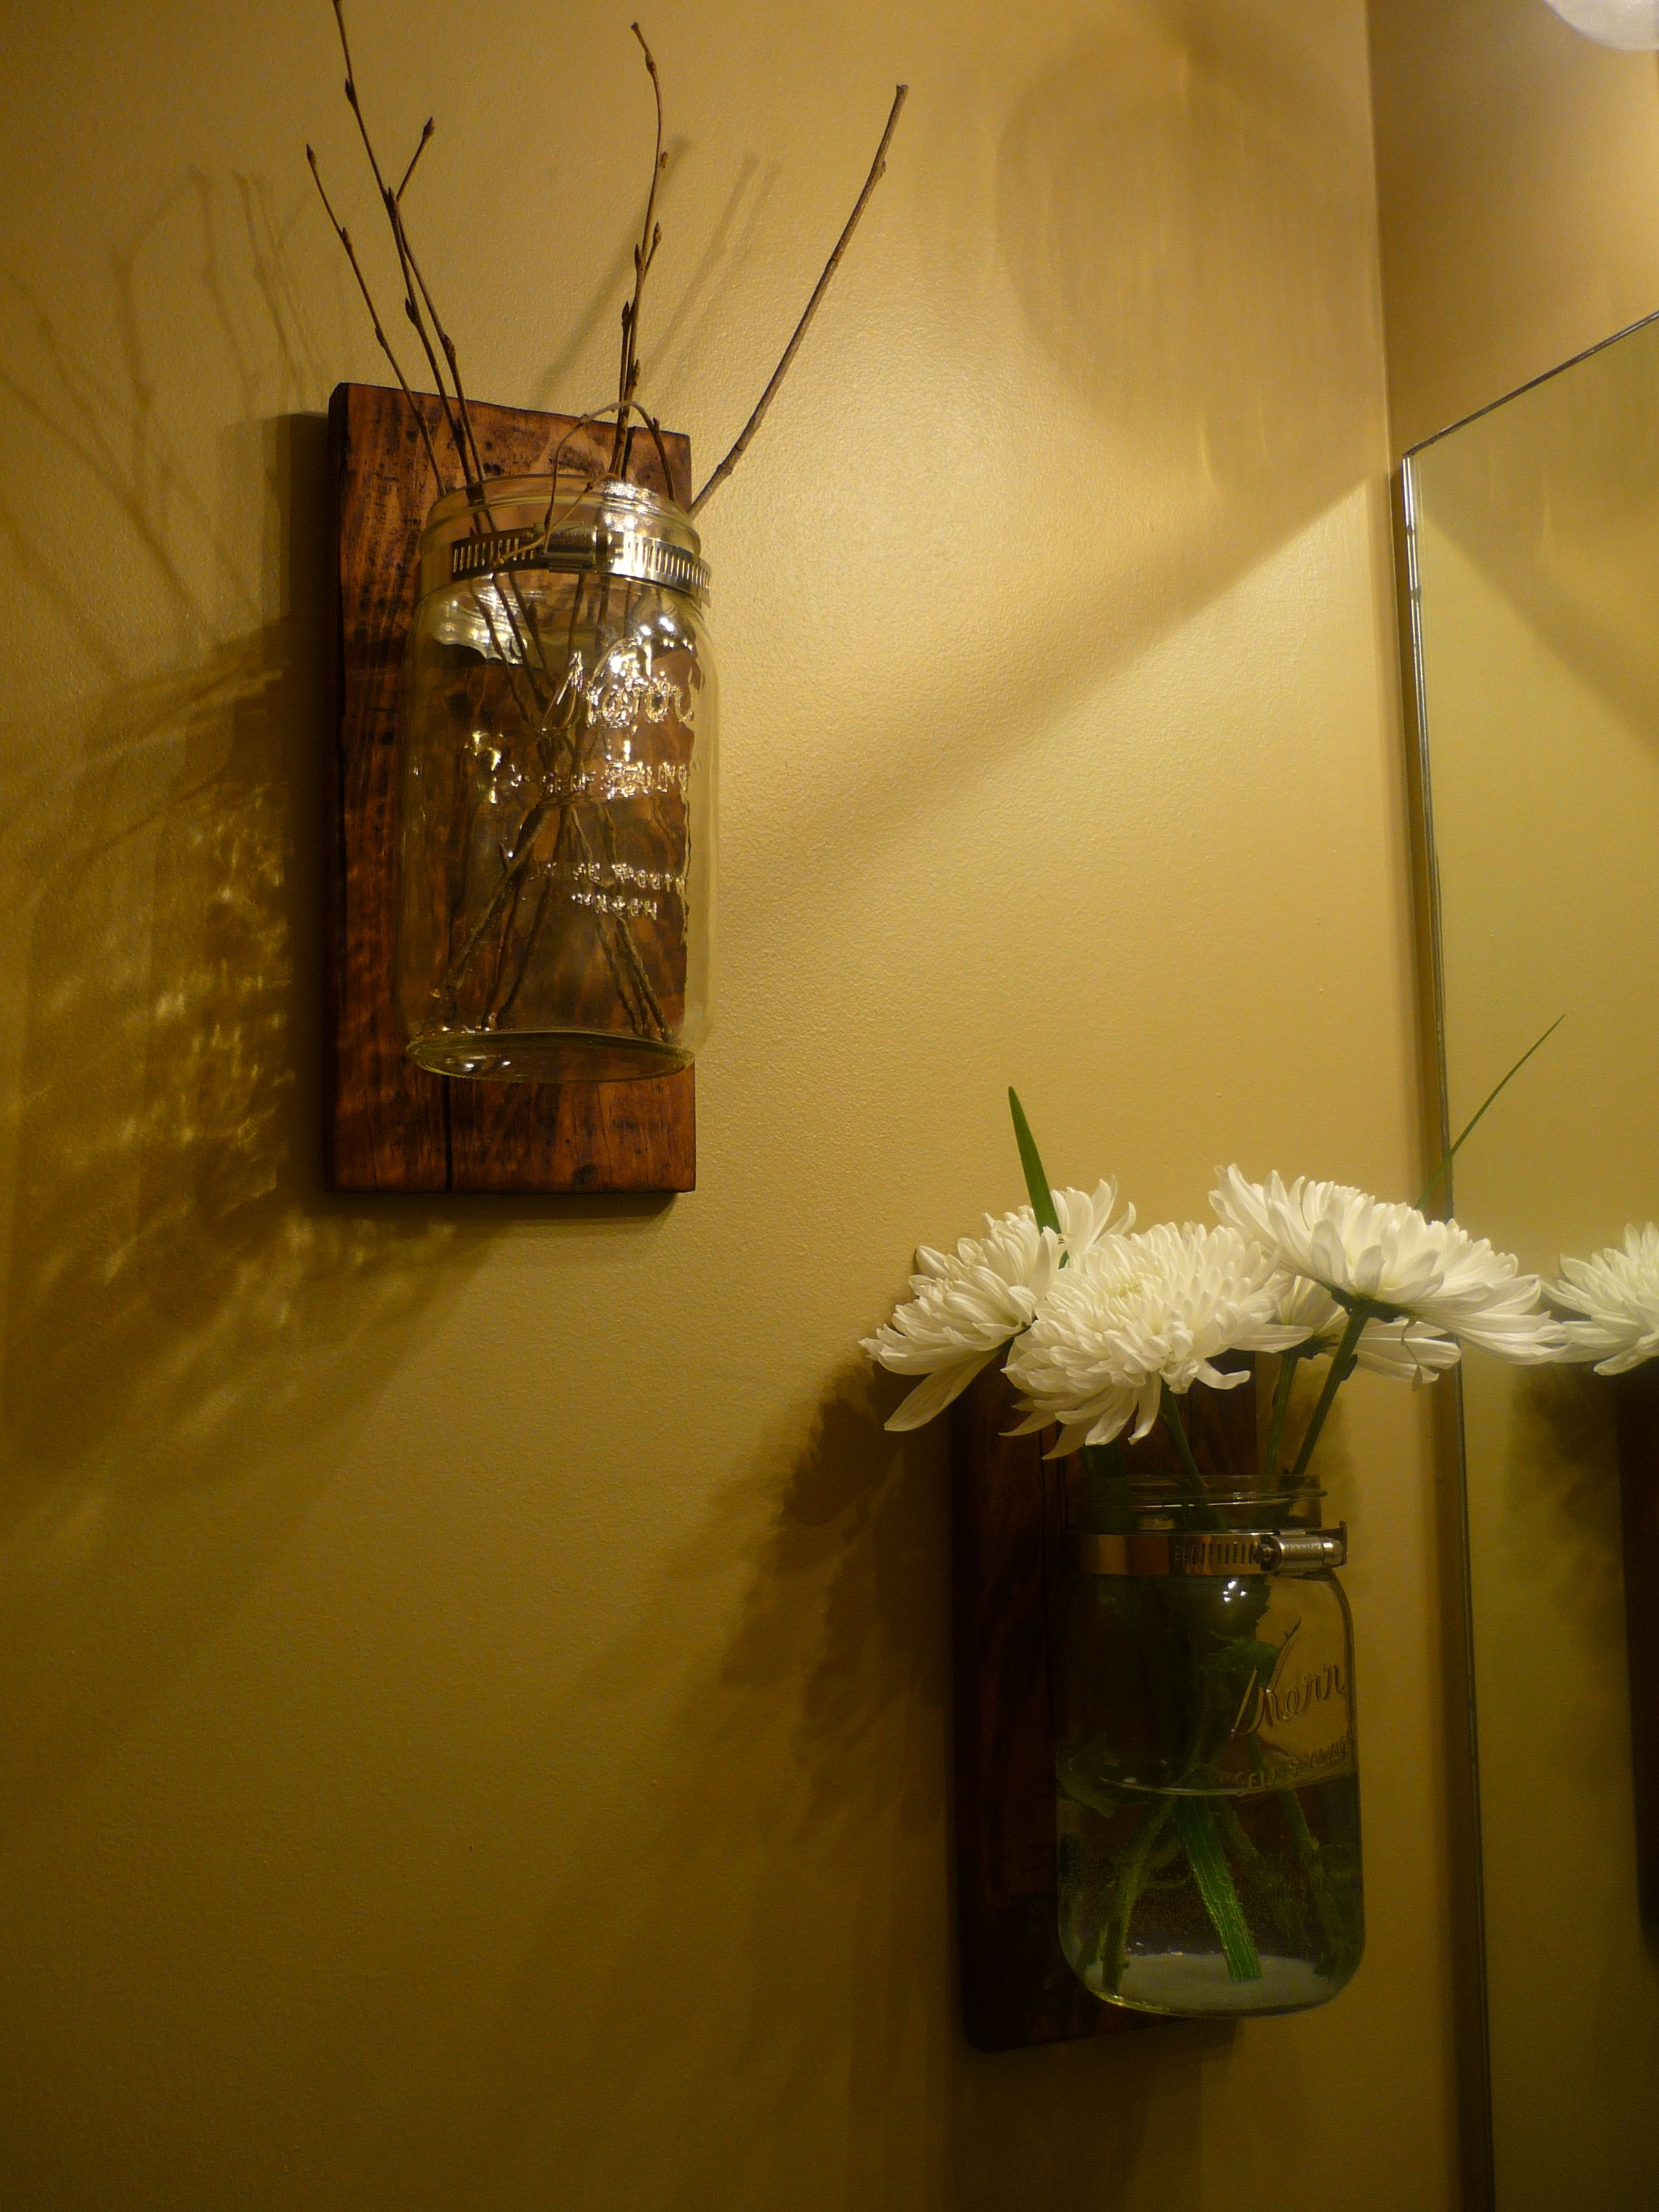 Repurposed Pallet into Wall Sconces | Pallet Furniture/Decor ...